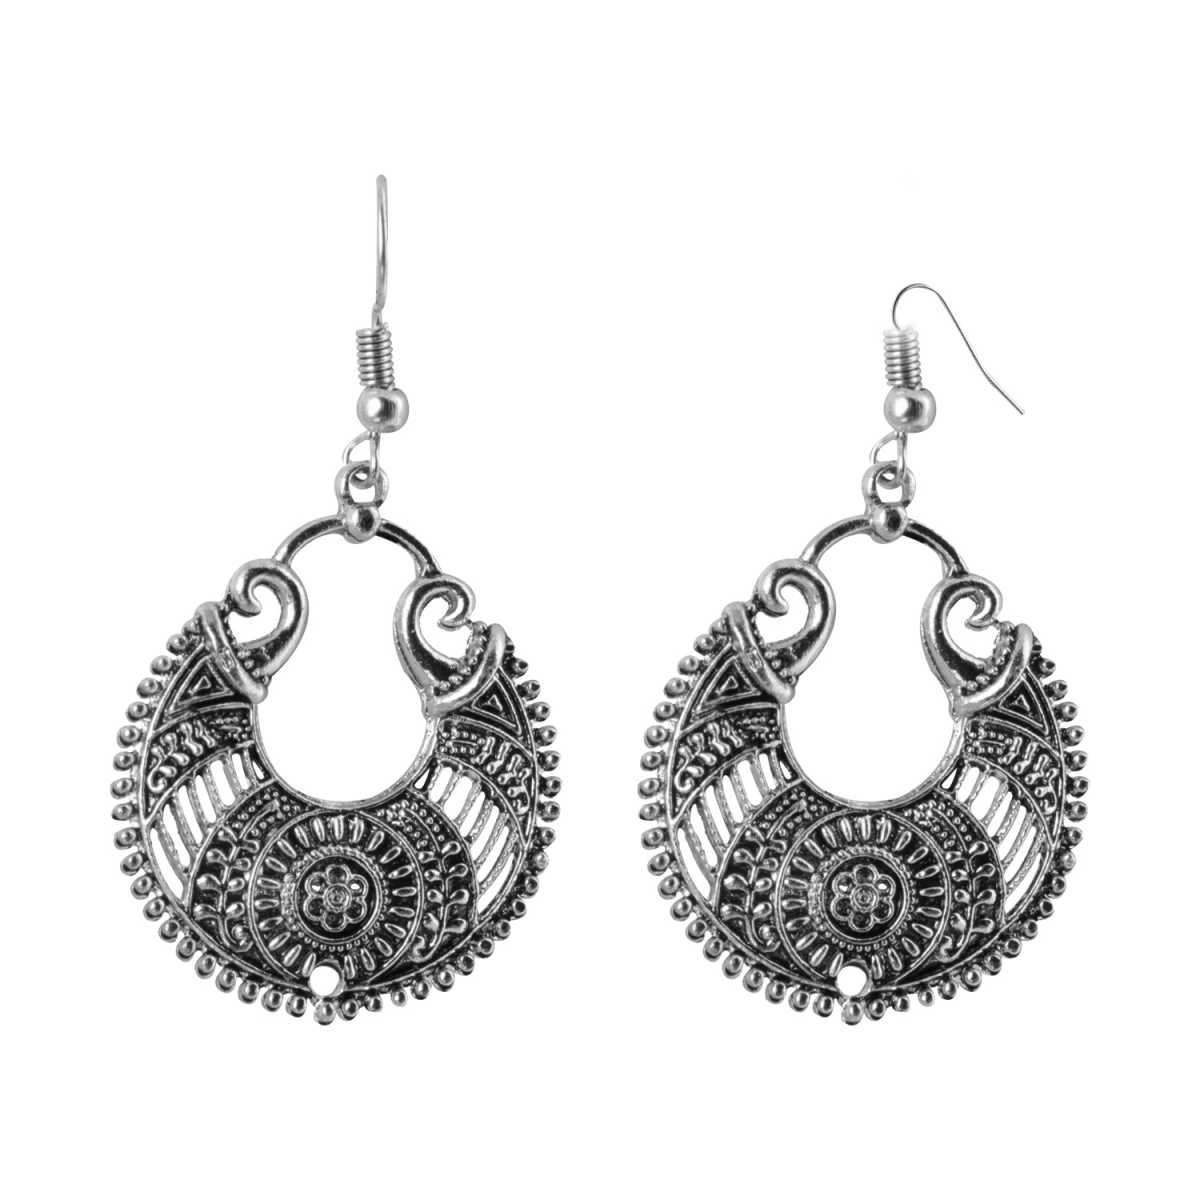 Silver Shine Classic Silver Arabic Design Chandbali Earrings for Women